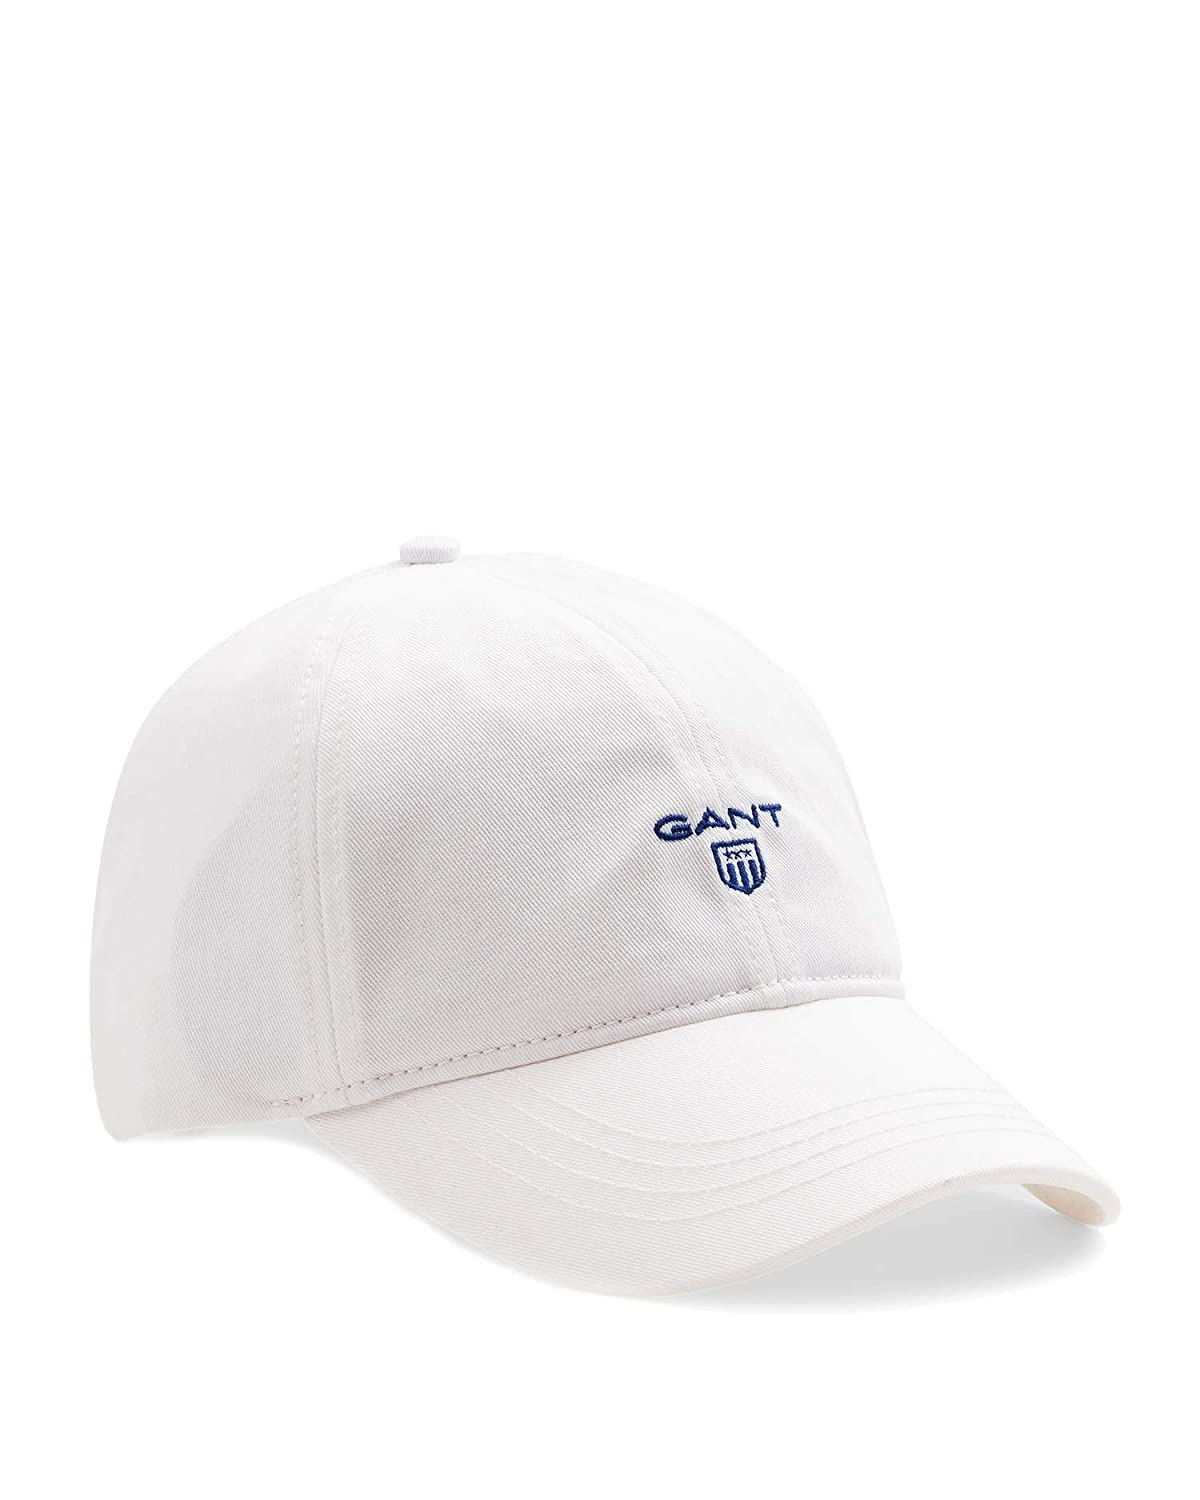 Gant Mens Twill Cap White: Amazon.es: Ropa y accesorios